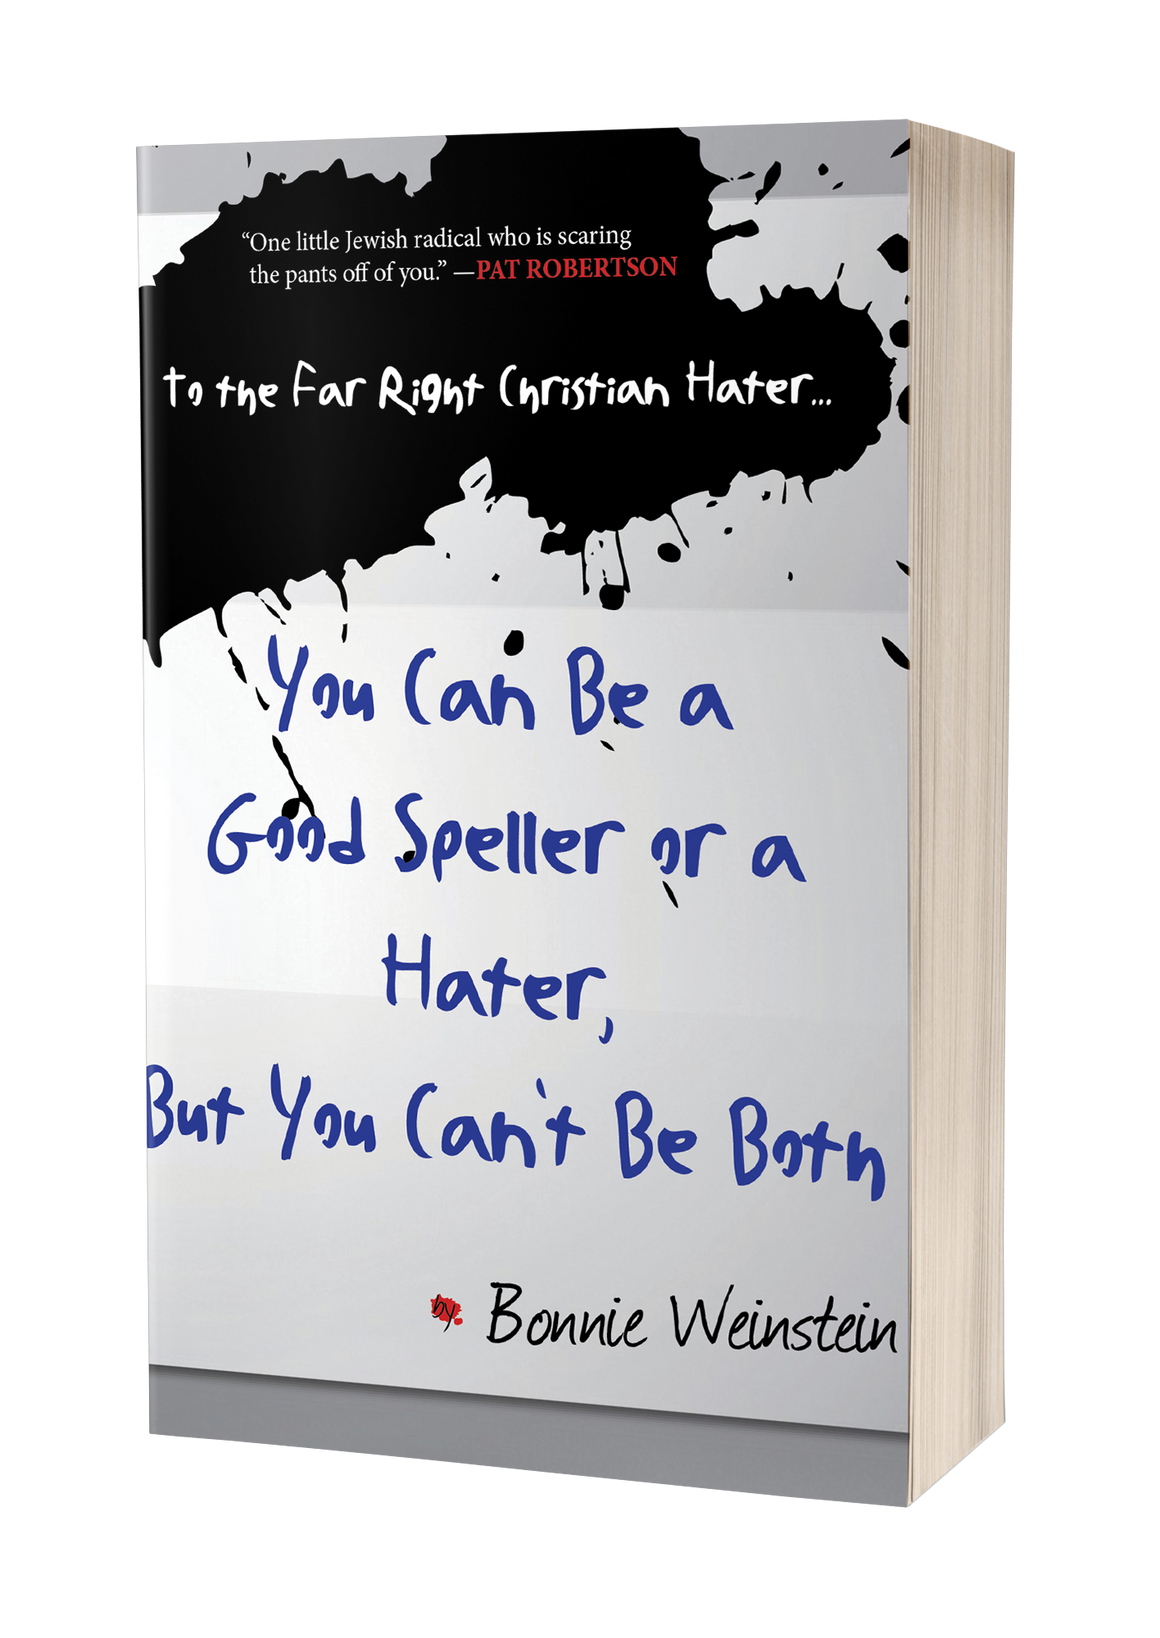 To the Far Right Christian Hater...You Can Be a Speller or a Hater, But You Can't Be Both